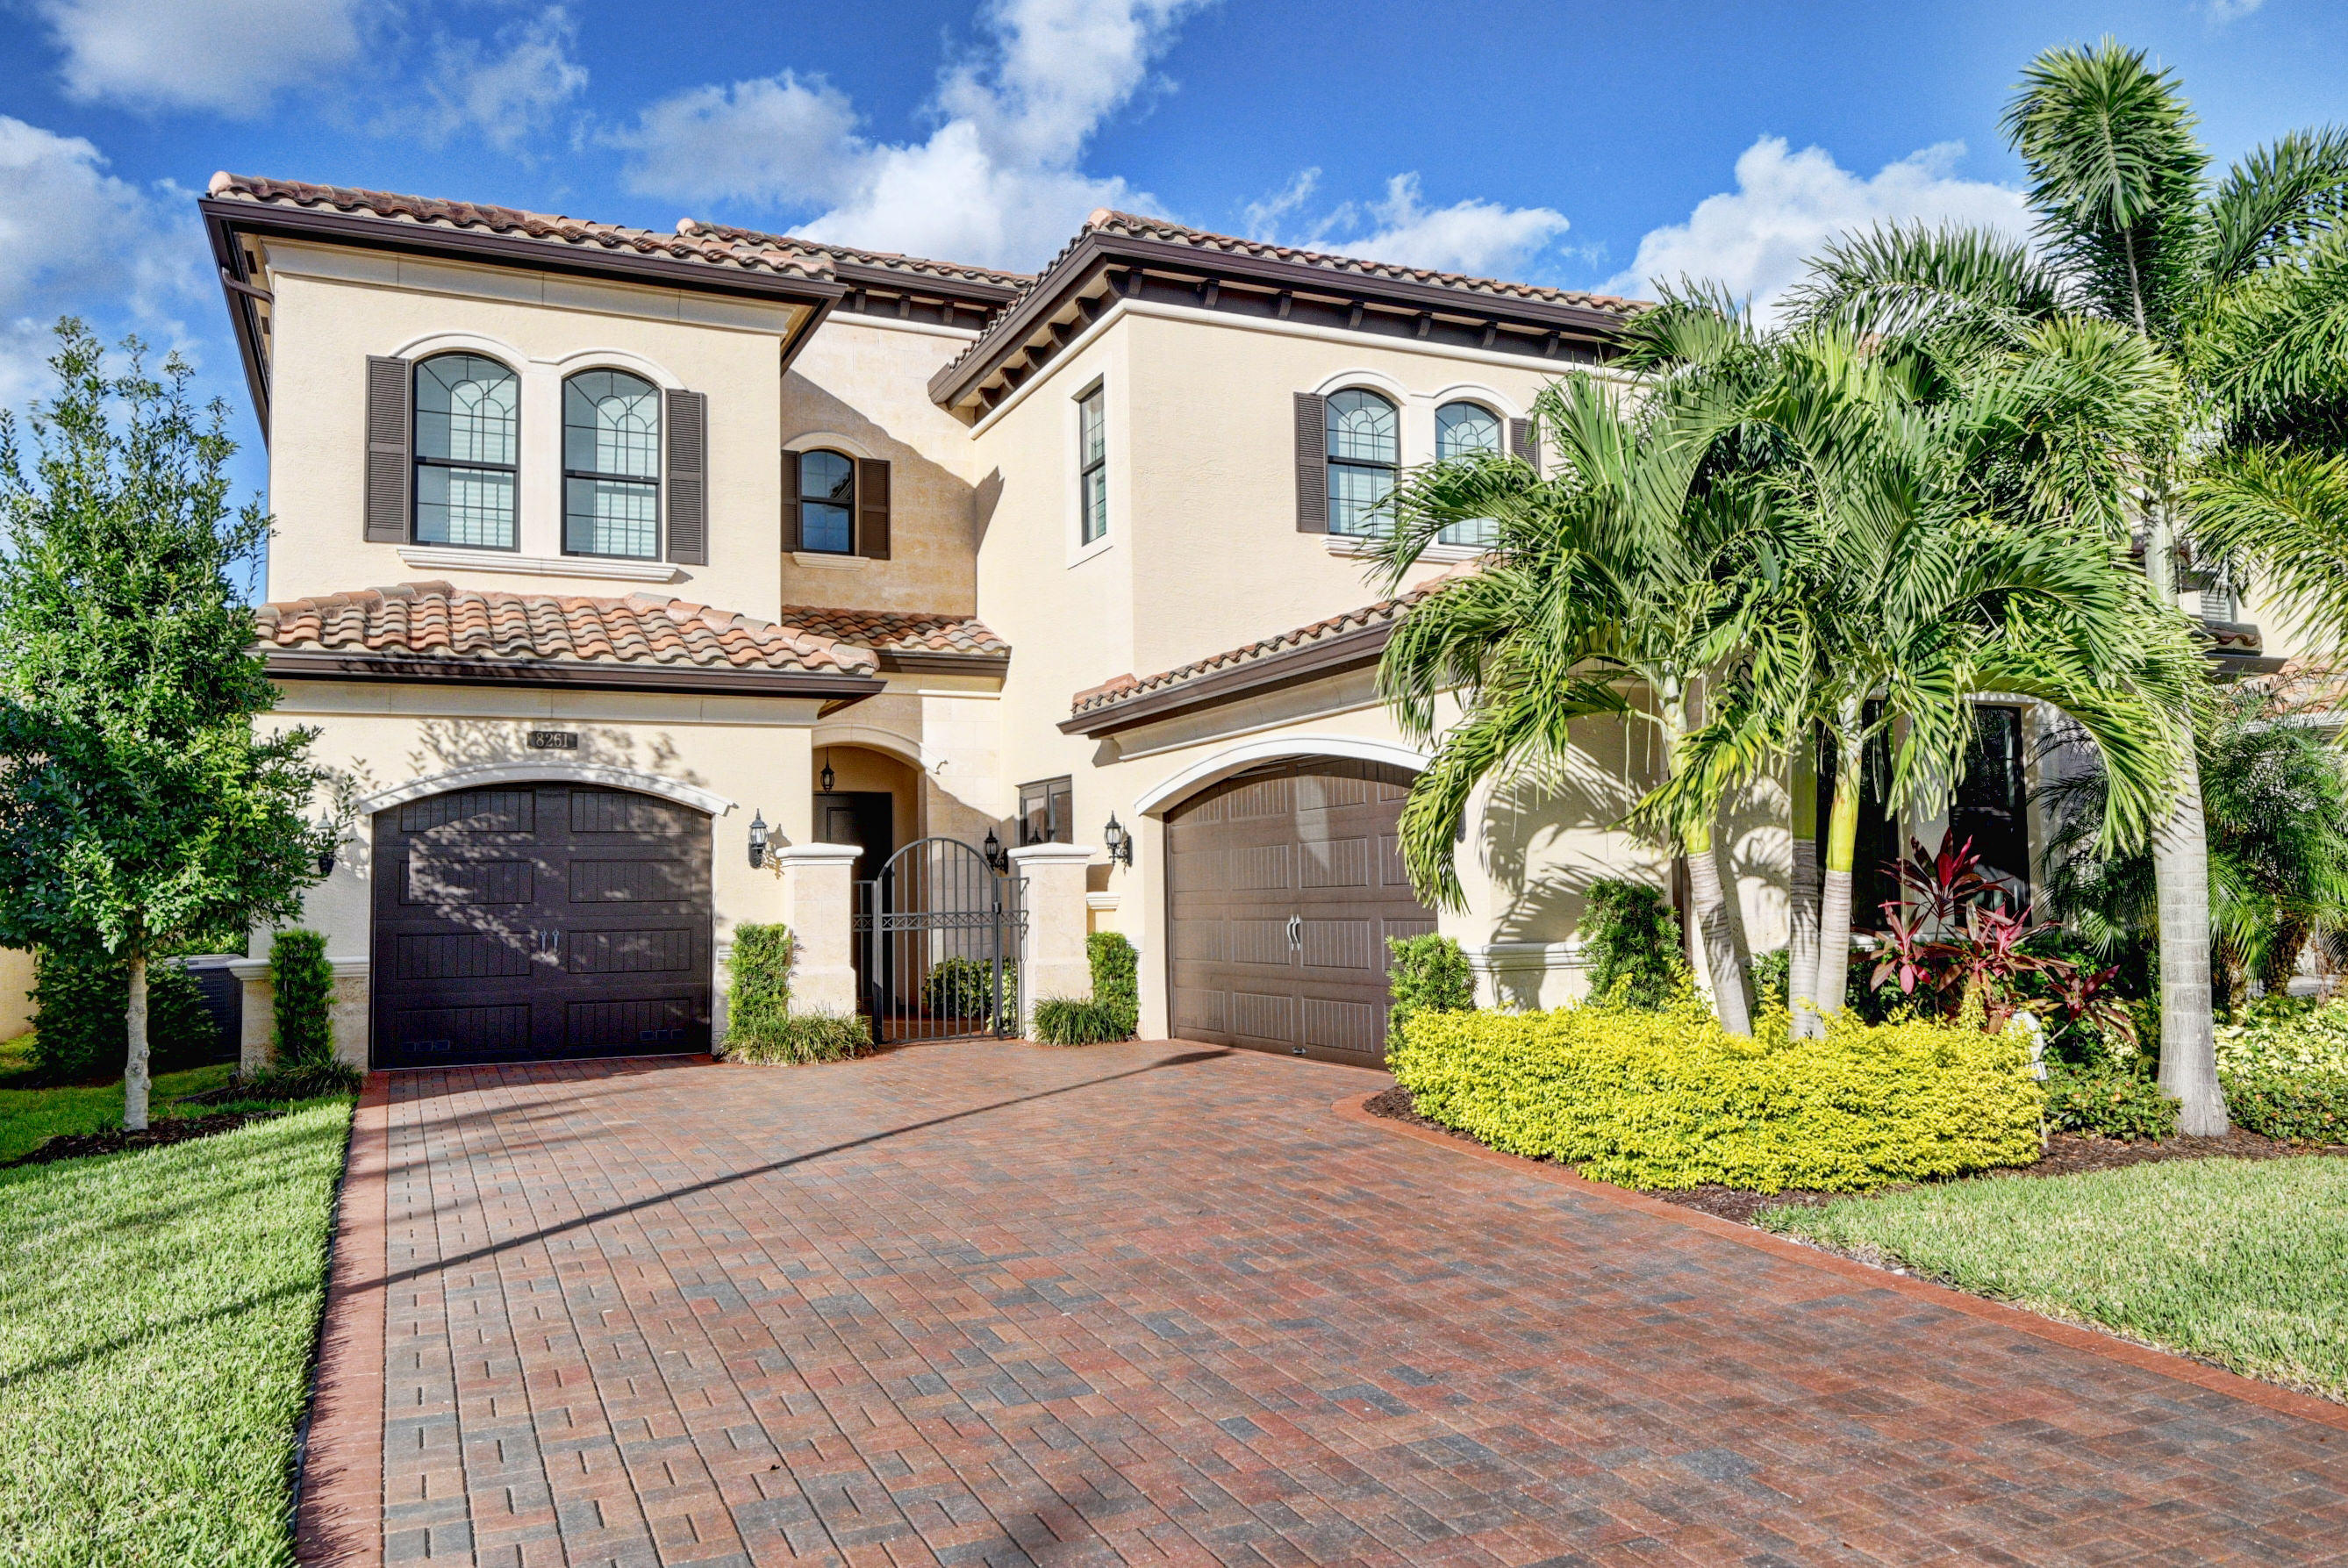 8261 Banpo Bridge Way, Delray Beach, Florida 33446, 5 Bedrooms Bedrooms, ,7.1 BathroomsBathrooms,Single Family,For Sale,THE BRIDGES,Banpo Bridge,RX-10486670